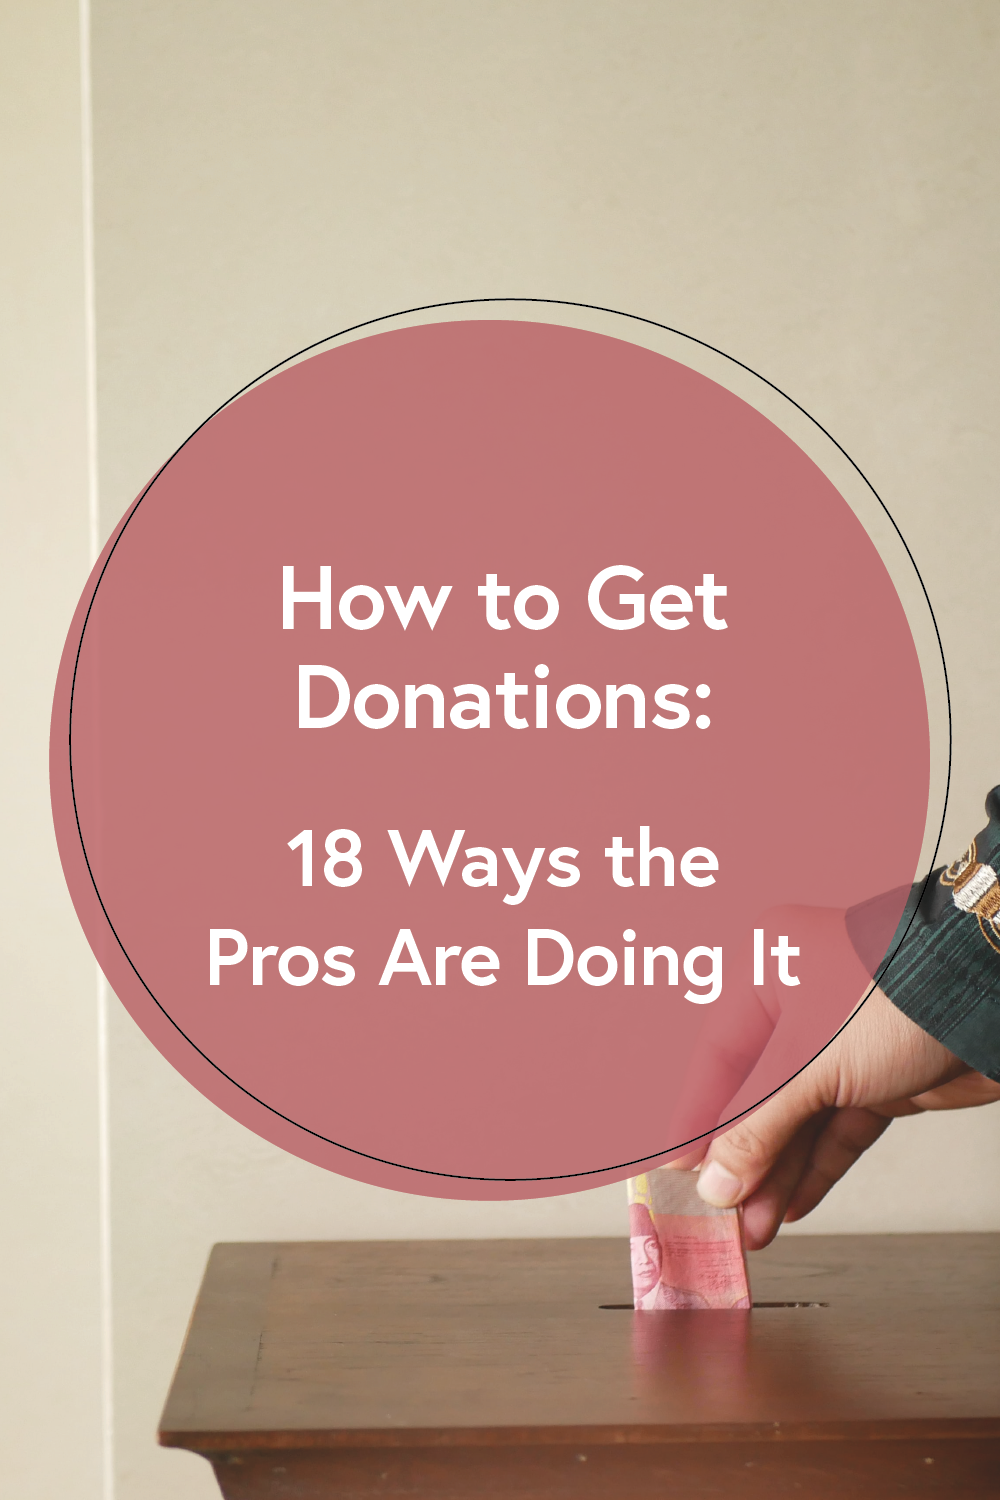 While charitable giving has actually increased 10% in the last year, so has the amount of effort it takes to get a donation. So, here is a list of 18 ways organizations have captured the attention of donors on the go and increased donations.